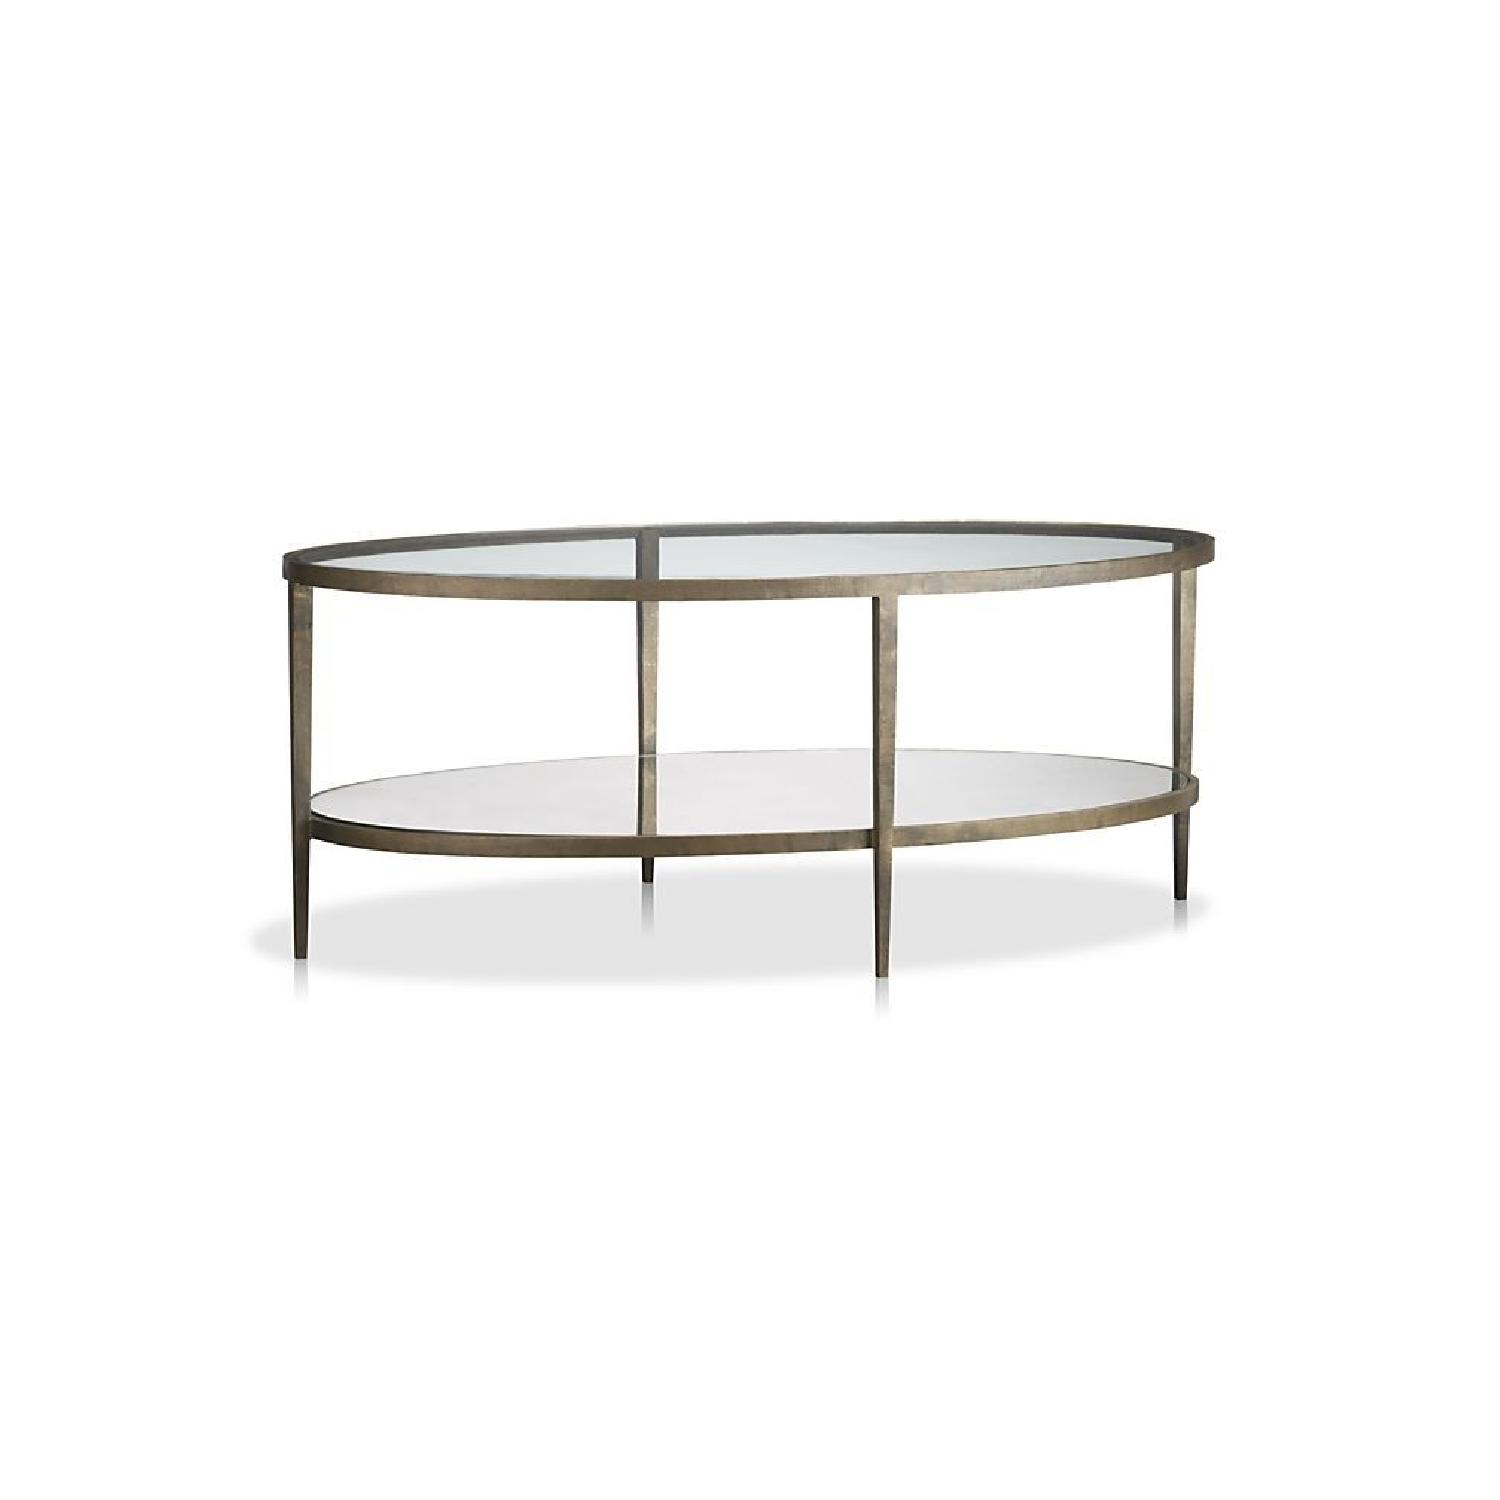 Crate & Barrel Claremont Oval Coffee Table - image-2